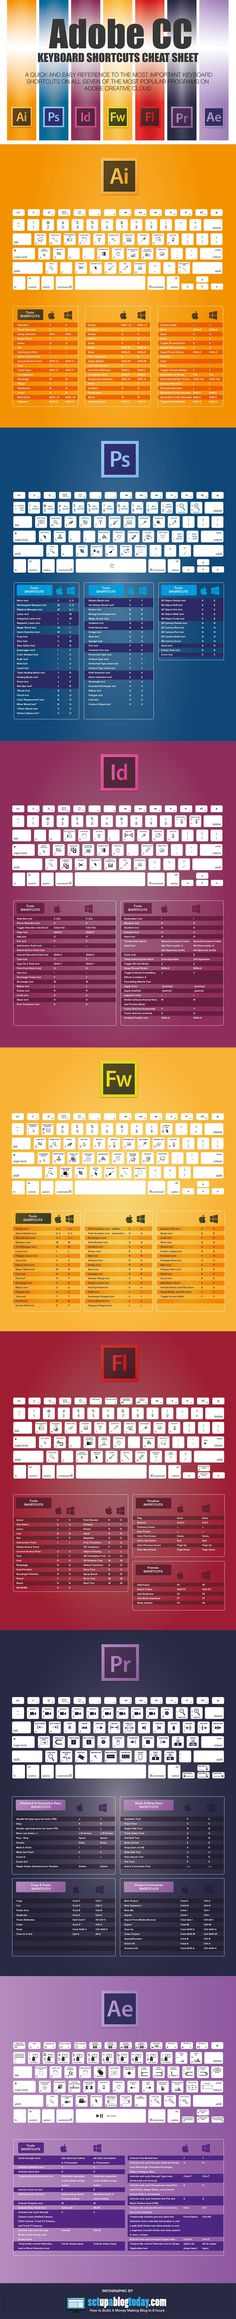 2015-ultimate-adobe-cc-keyboard-shortcuts-cheatsheet.jpg 1,000×9,828픽셀